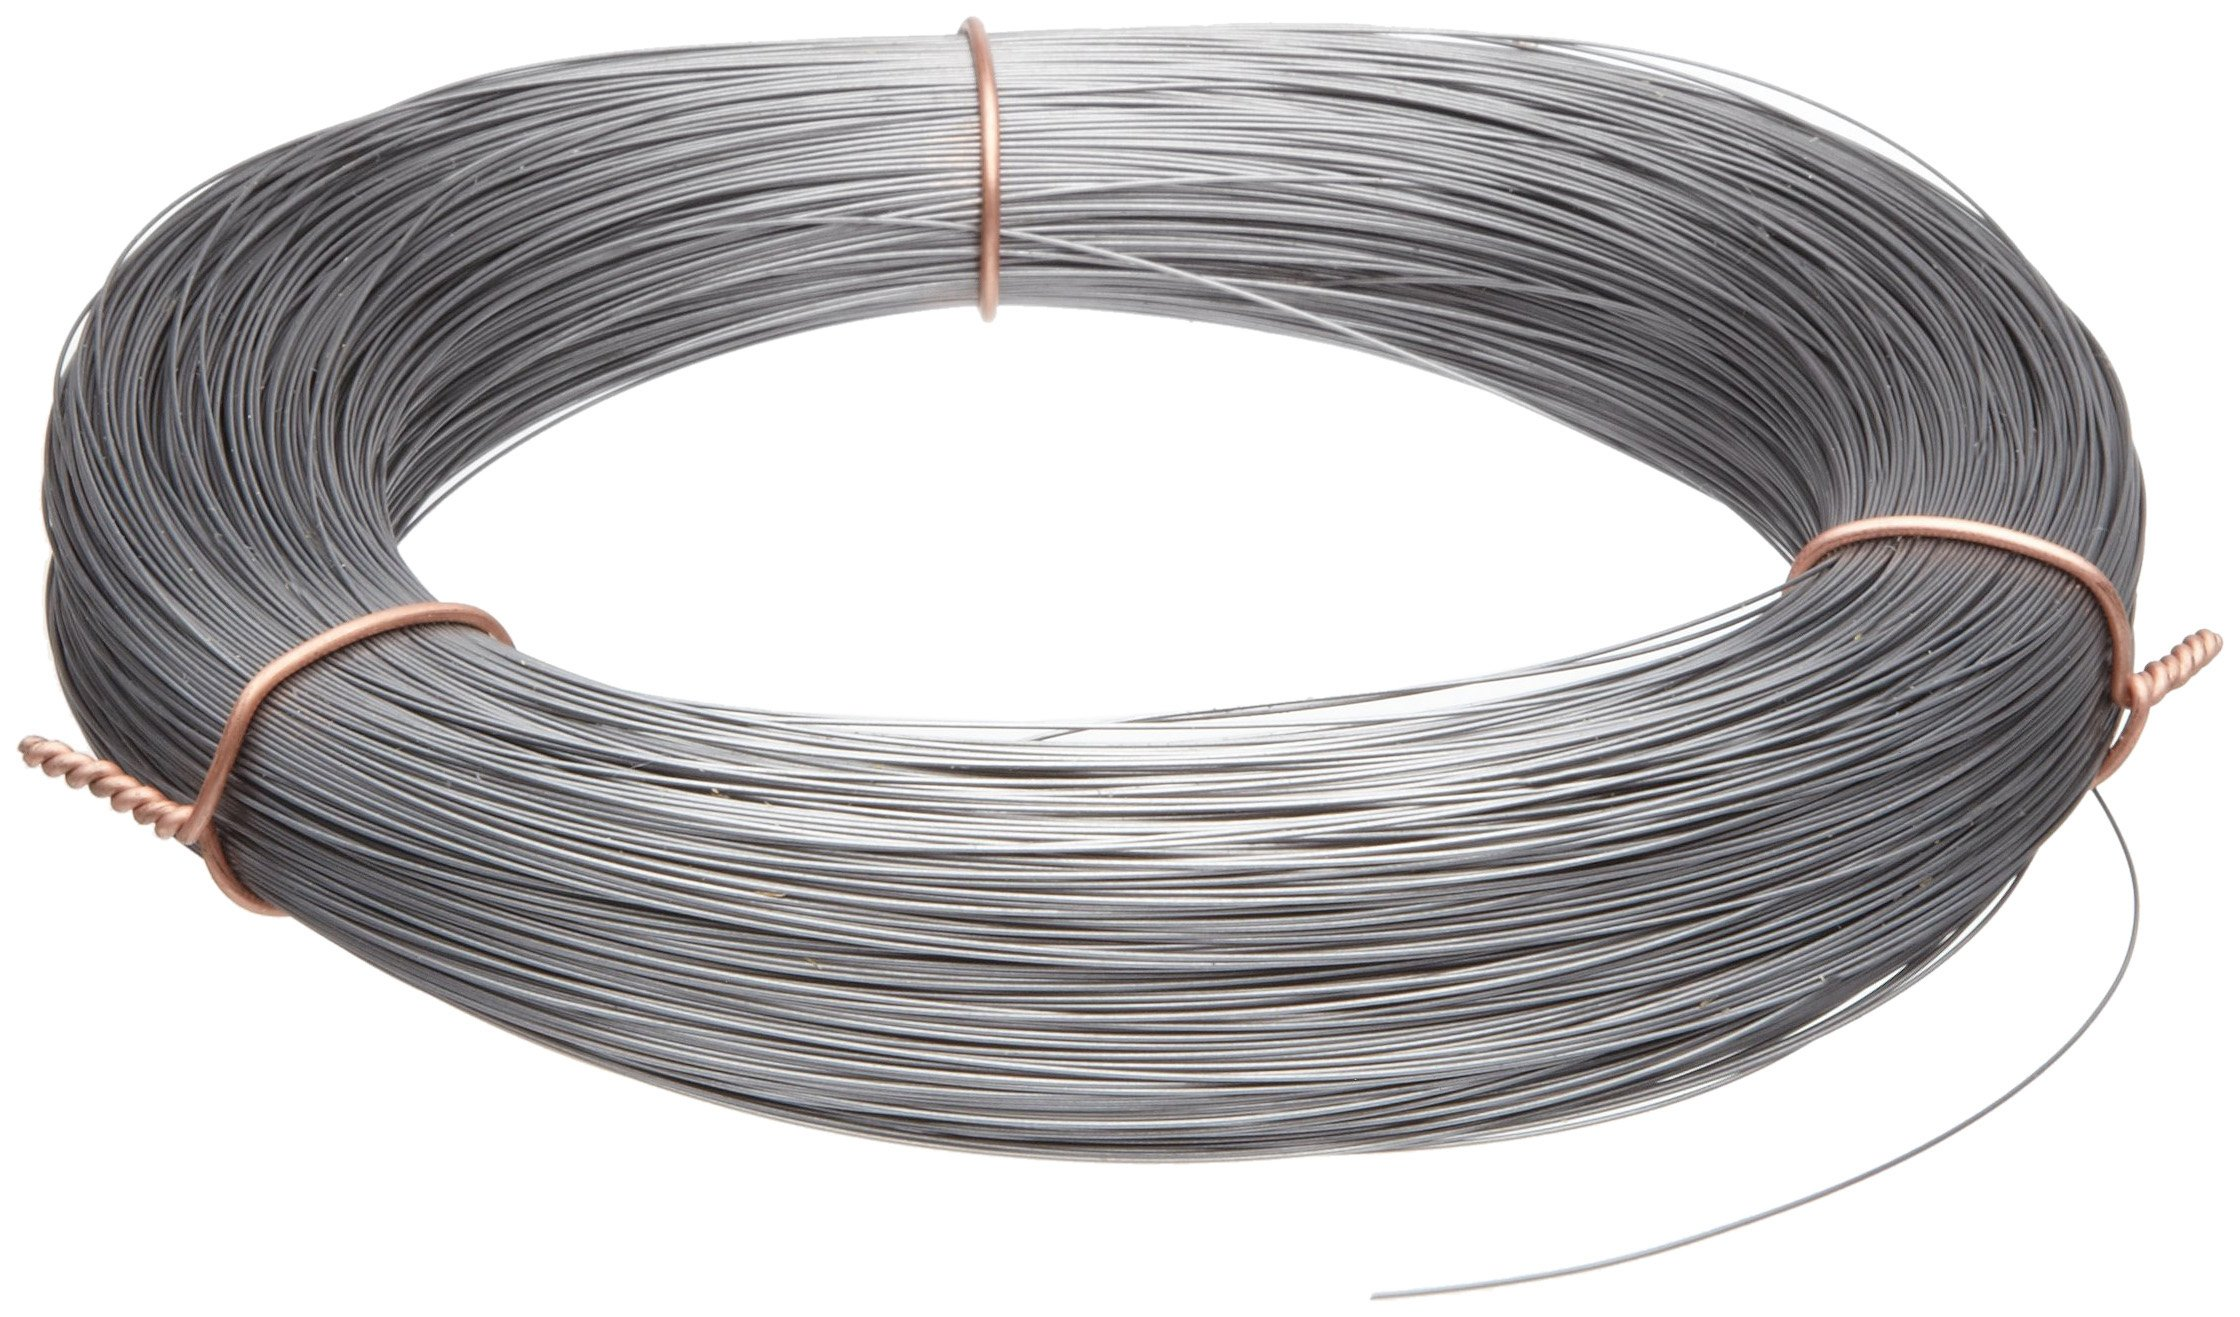 High Carbon Steel Wire, Mill Finish #2B (Smooth) Finish, Grade #2B Smooth, Full Hard Temper, Meets ASTM A228 Specifications, 0.130'' Diameter, 22' Length, Precision